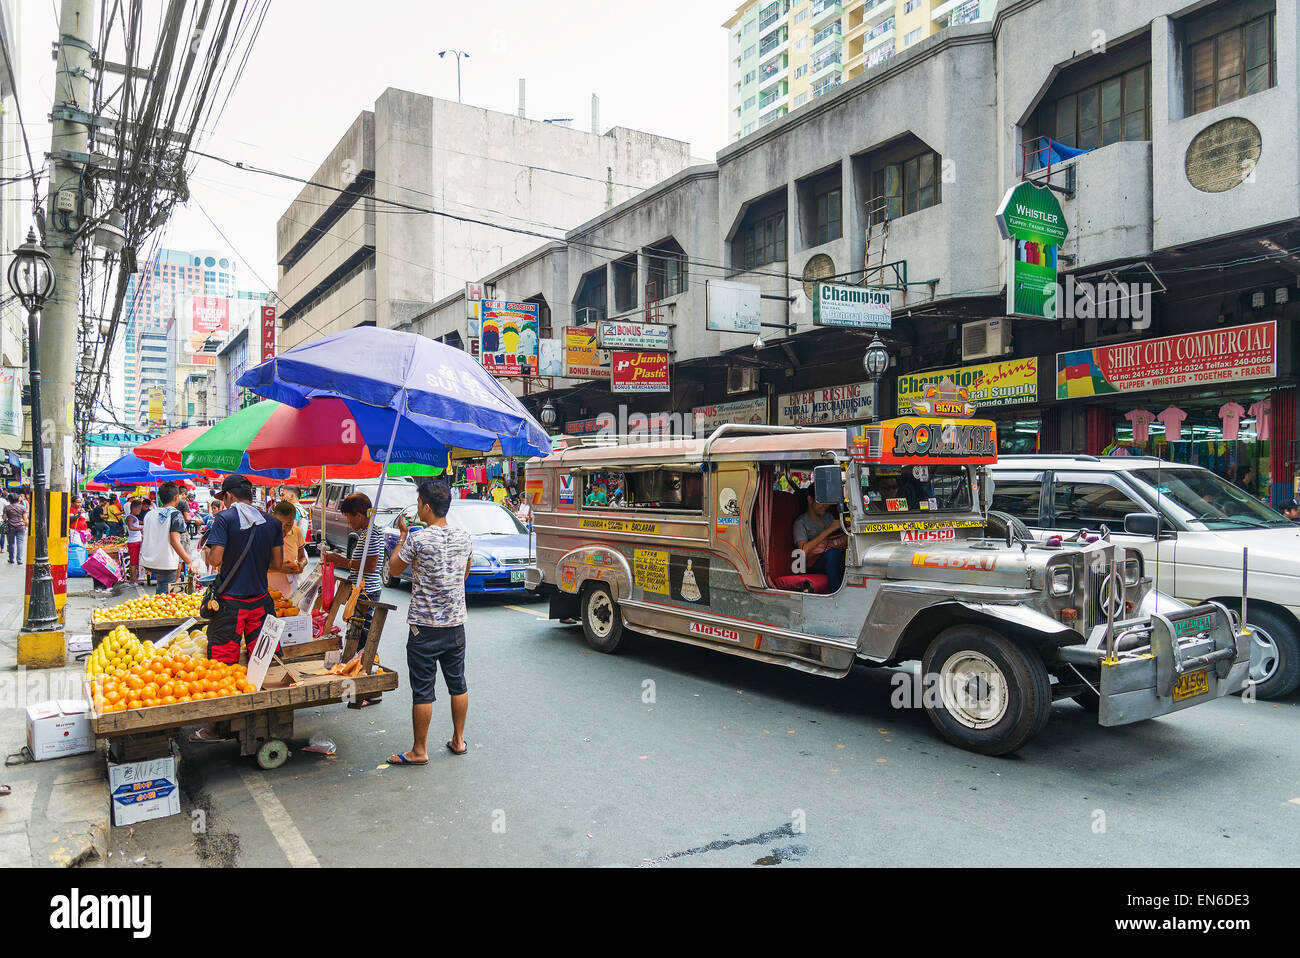 jeepney bus in manila chinatown street in philippines - Stock Image